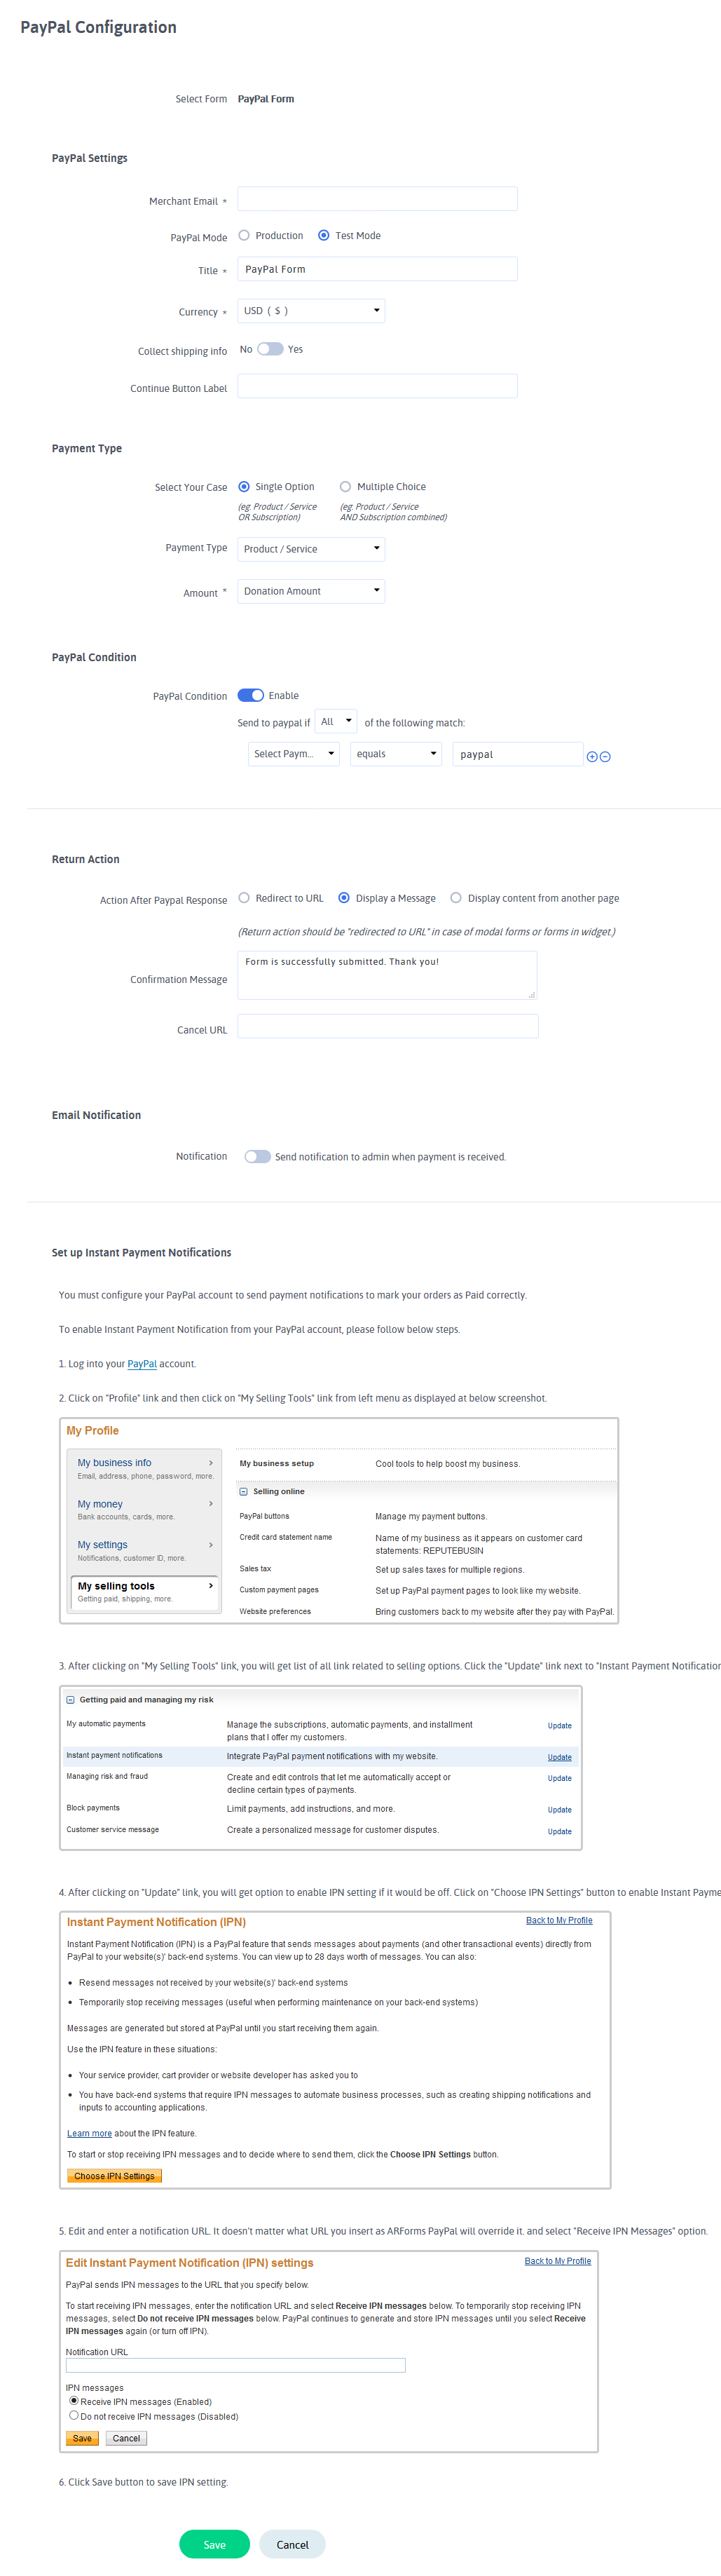 ARFoms PayPal - Configure PayPal Forms